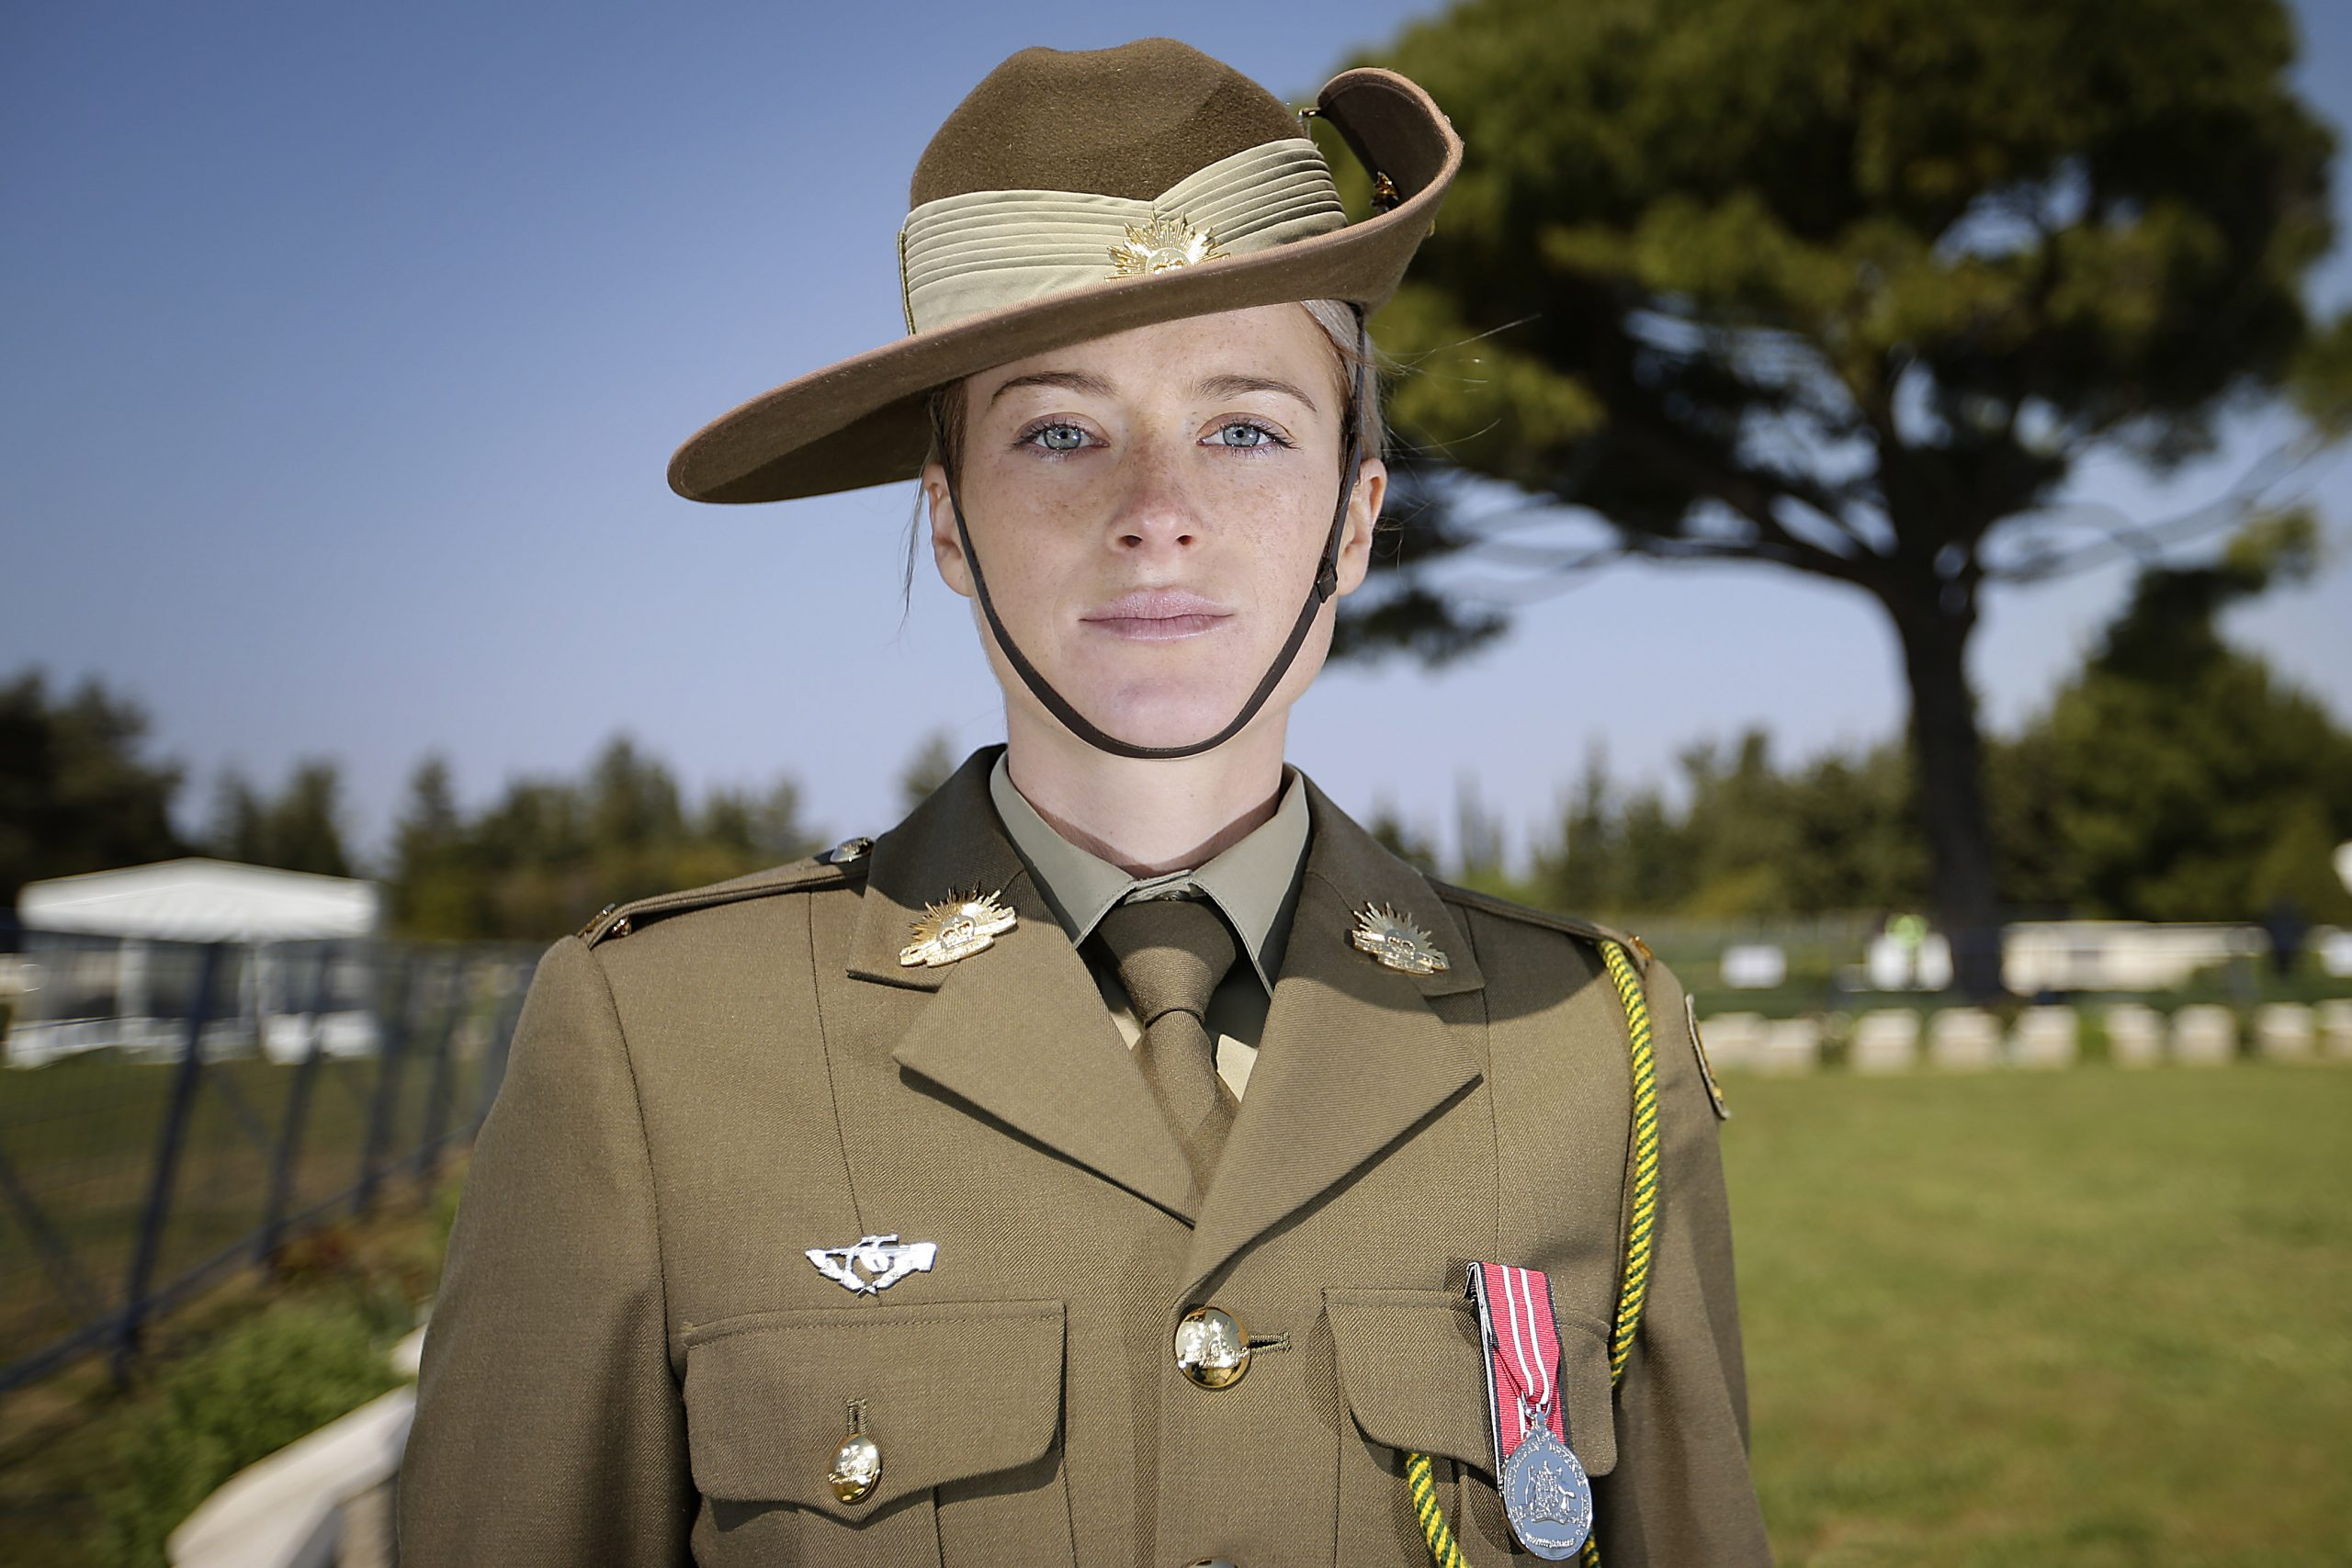 Bravery Trust and Coles partnership to support veterans this Anzac Day